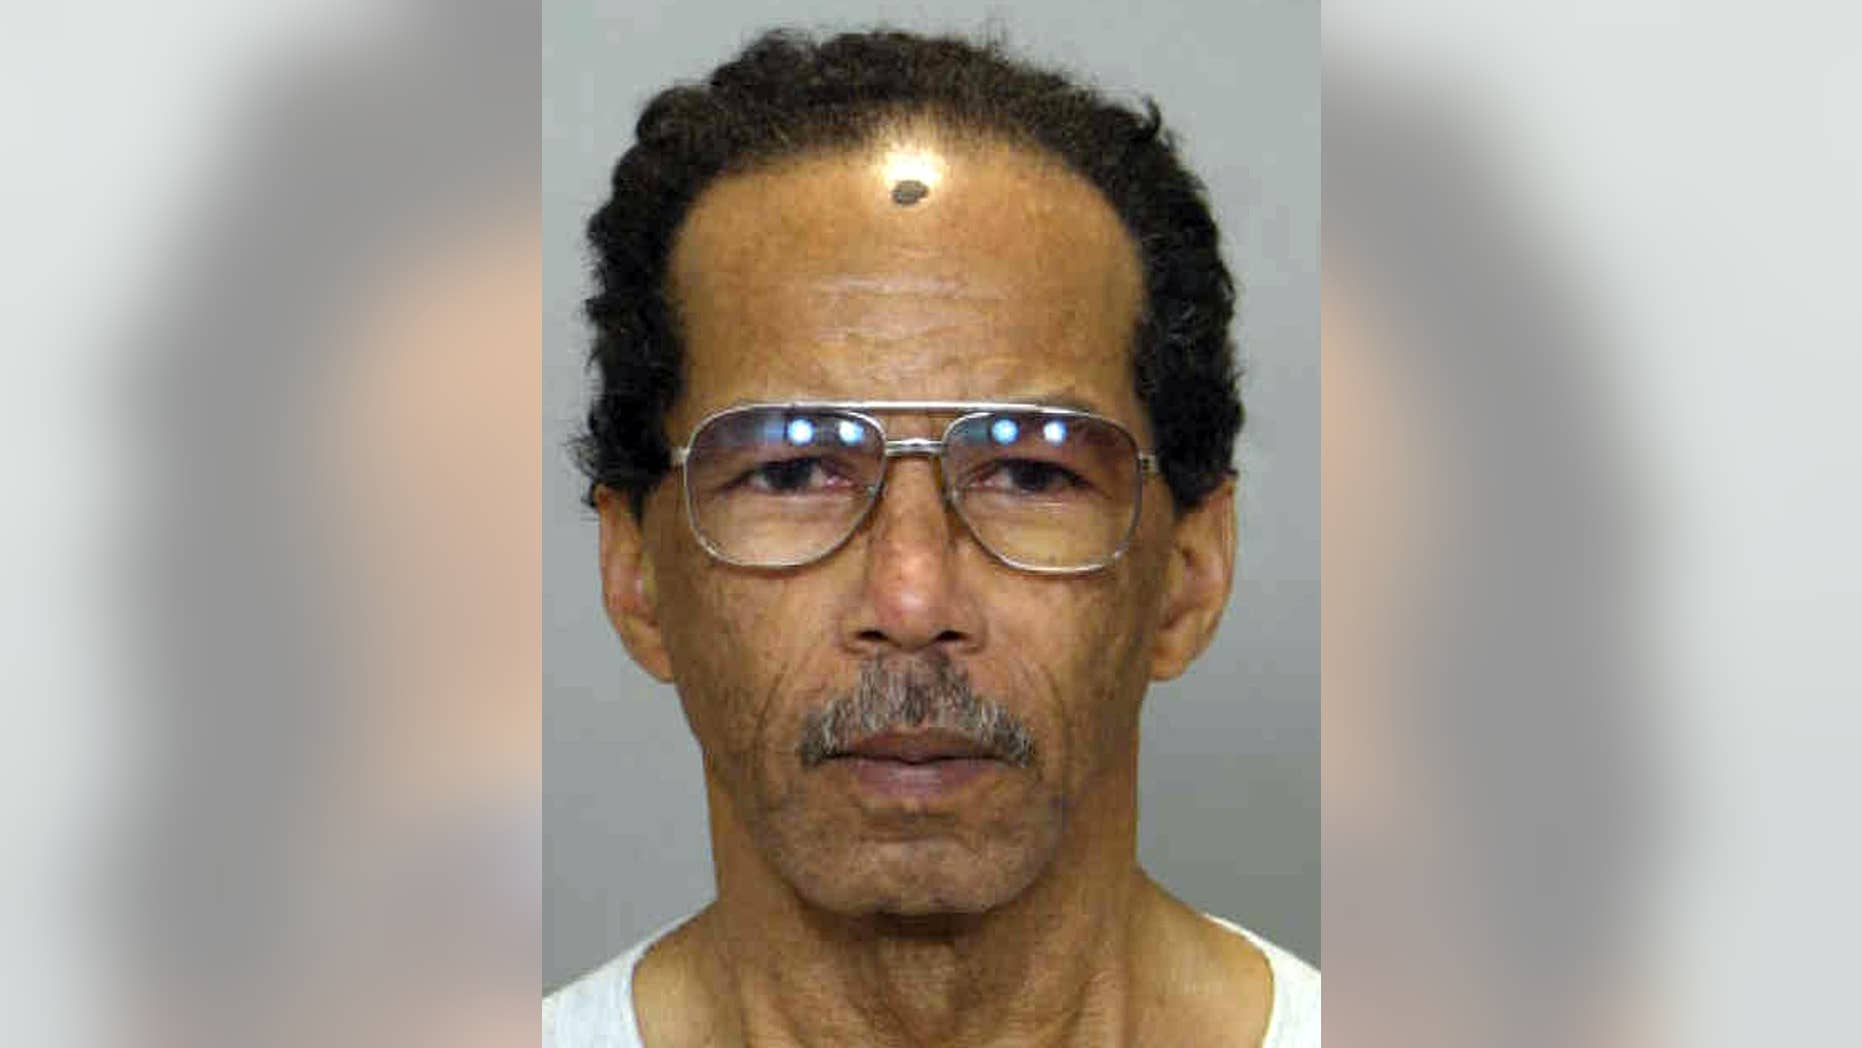 April 14, 2014: Convicted armed robber Ronald Dwaine Carnes, who eluded authorities for 41 years after escaping from a North Carolina prison.